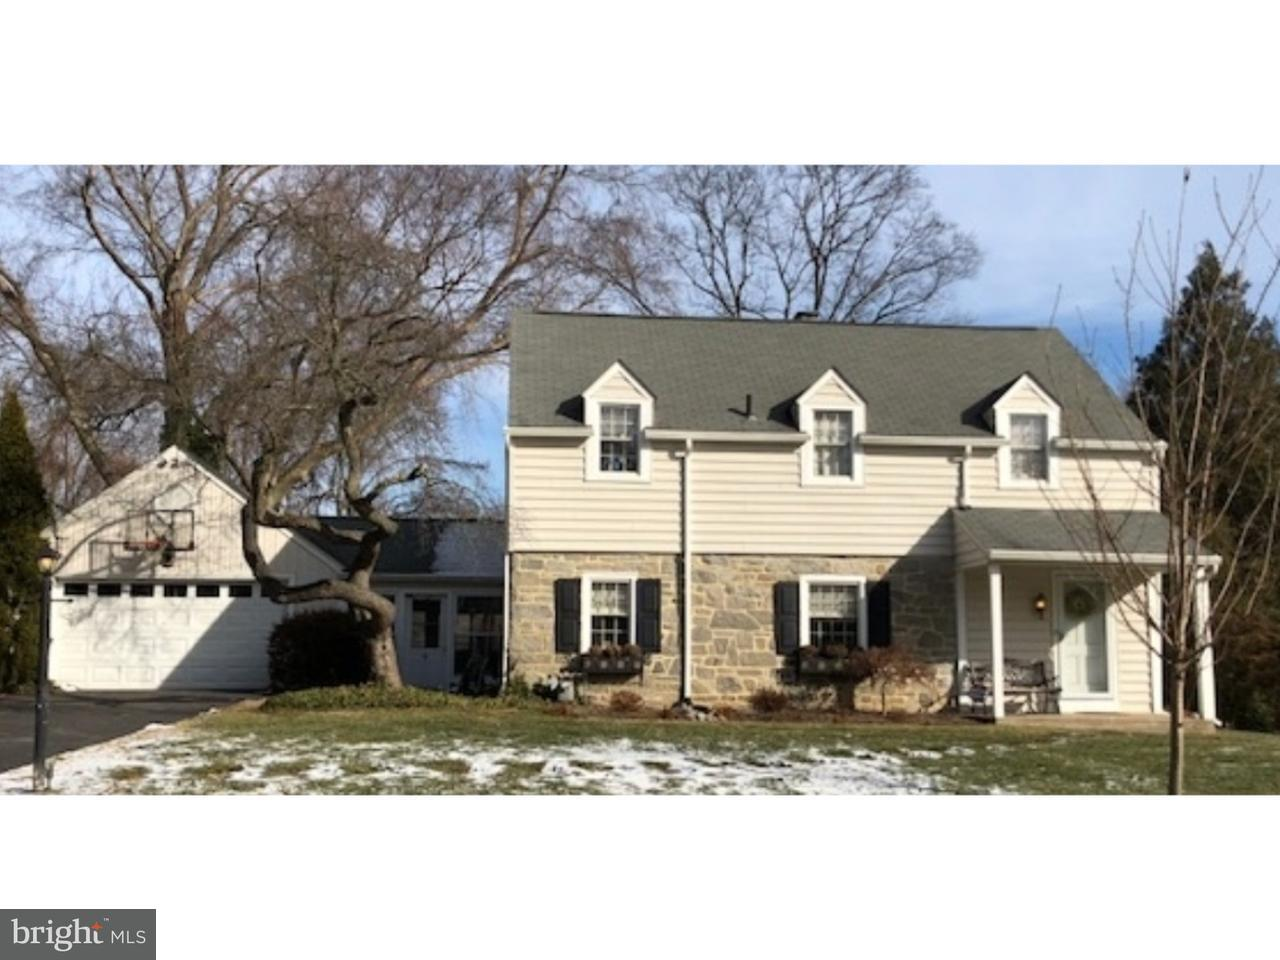 Single Family Home for Sale at 222 ENGLE Drive Wallingford, Pennsylvania 19086 United States